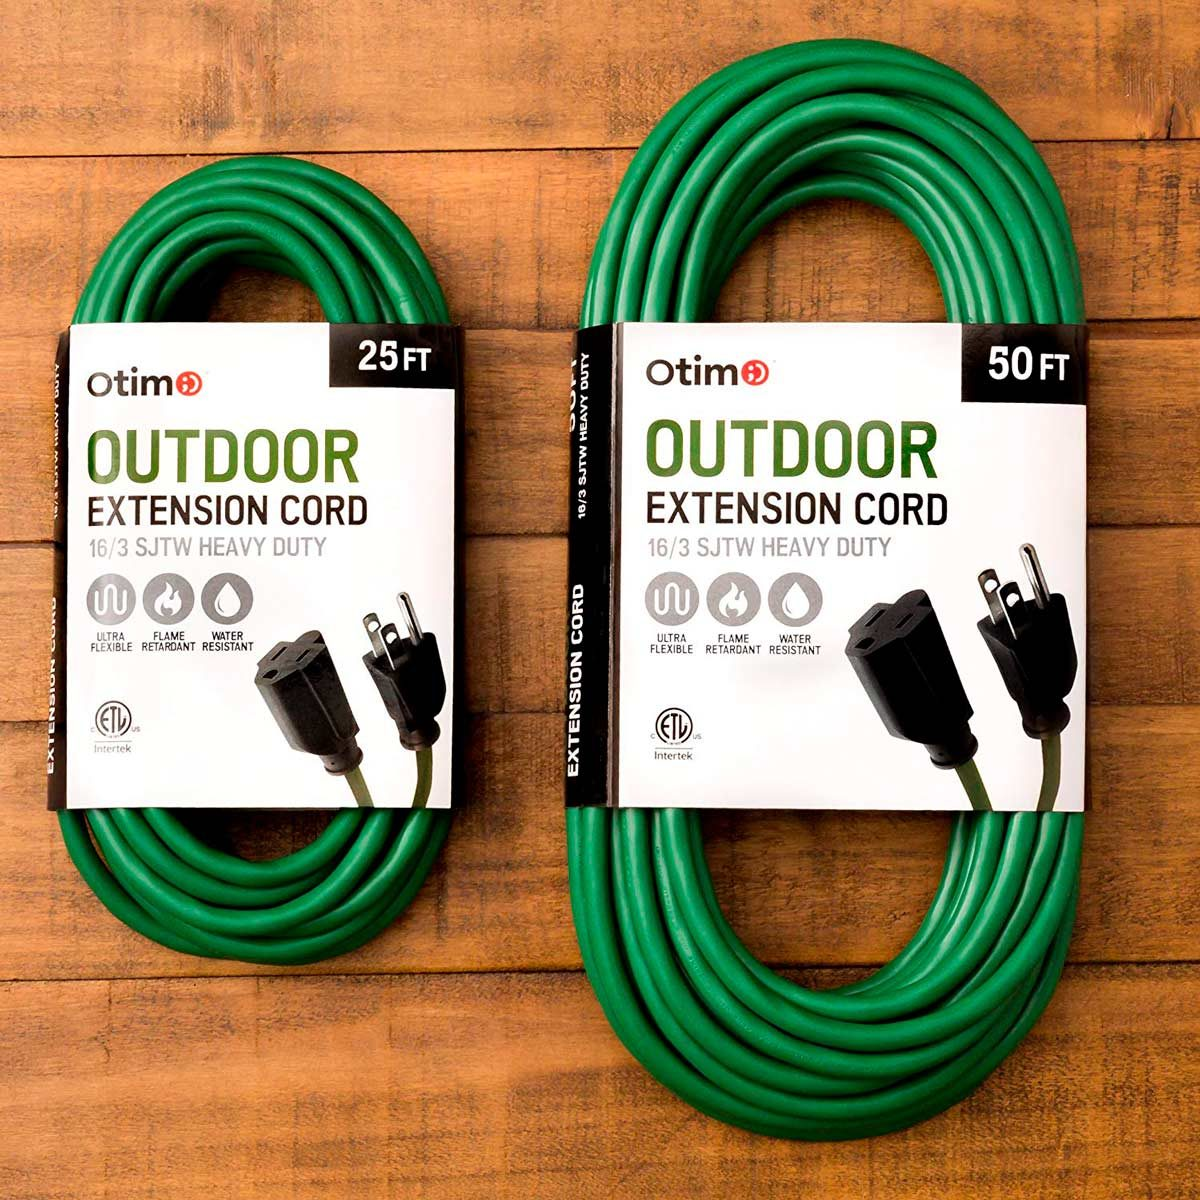 The Best Extension Cords For Outdoor